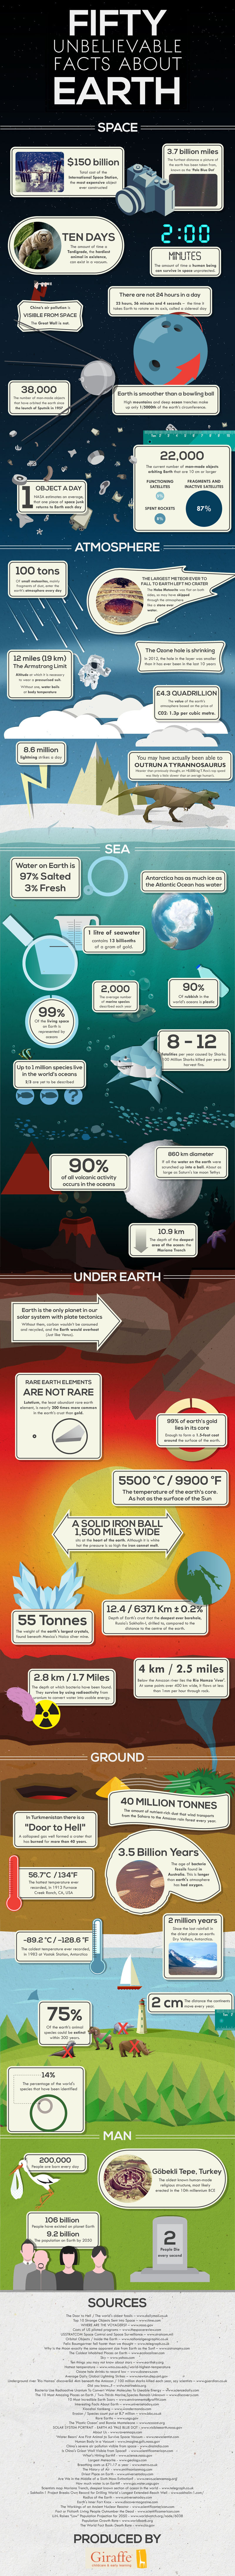 50-facts-about-earth3-1